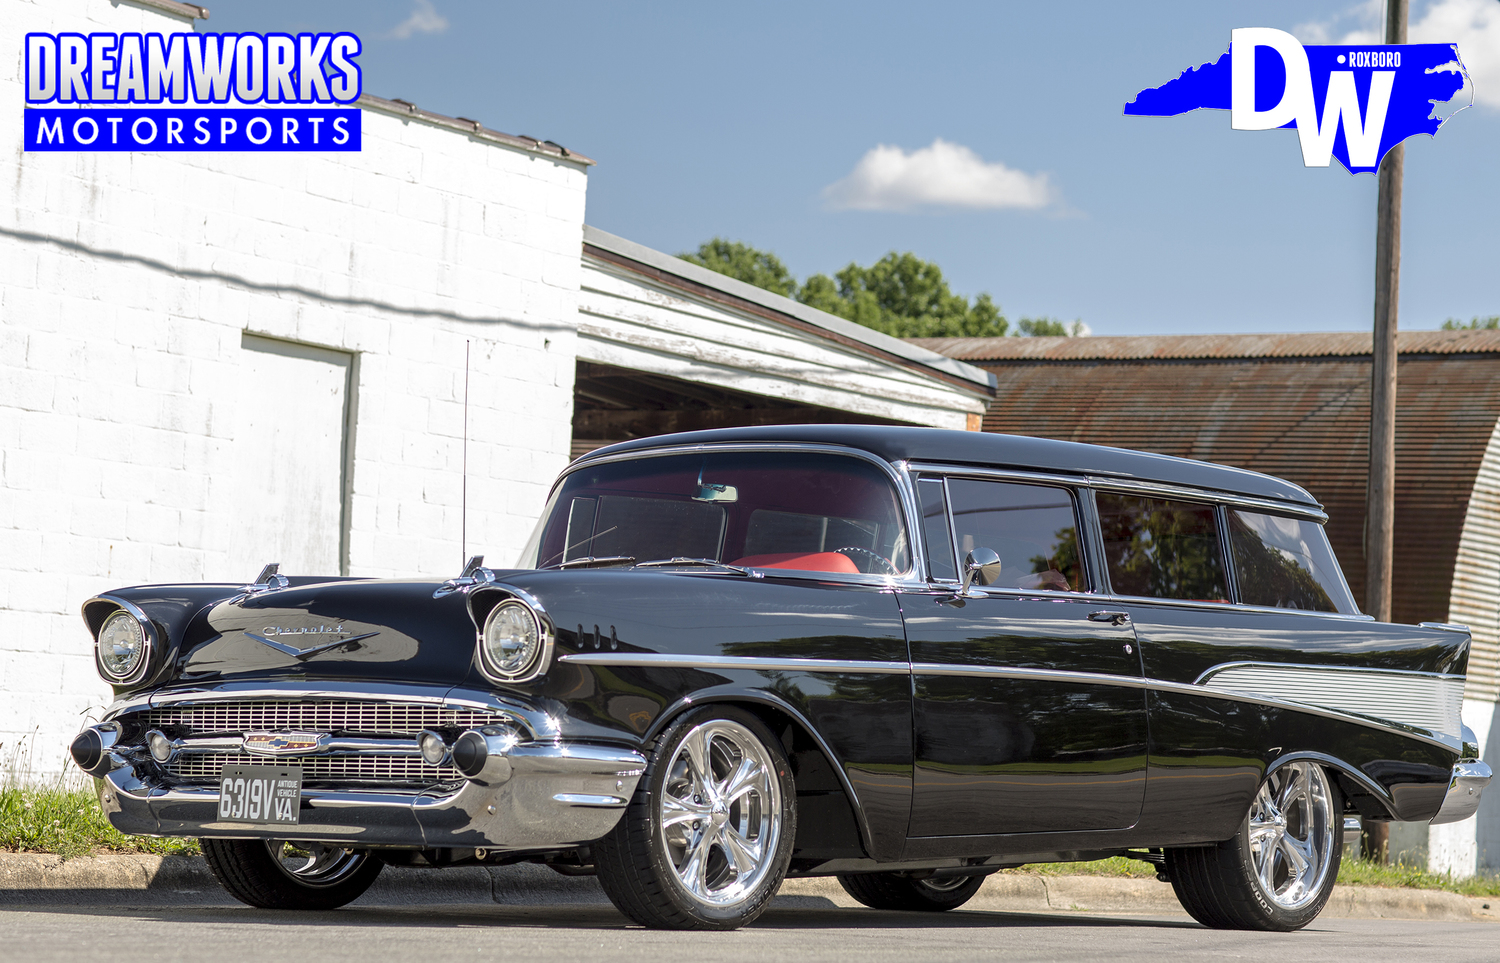 Muscle Cars Street Rods Hot Rods Dreamworks Motorsports